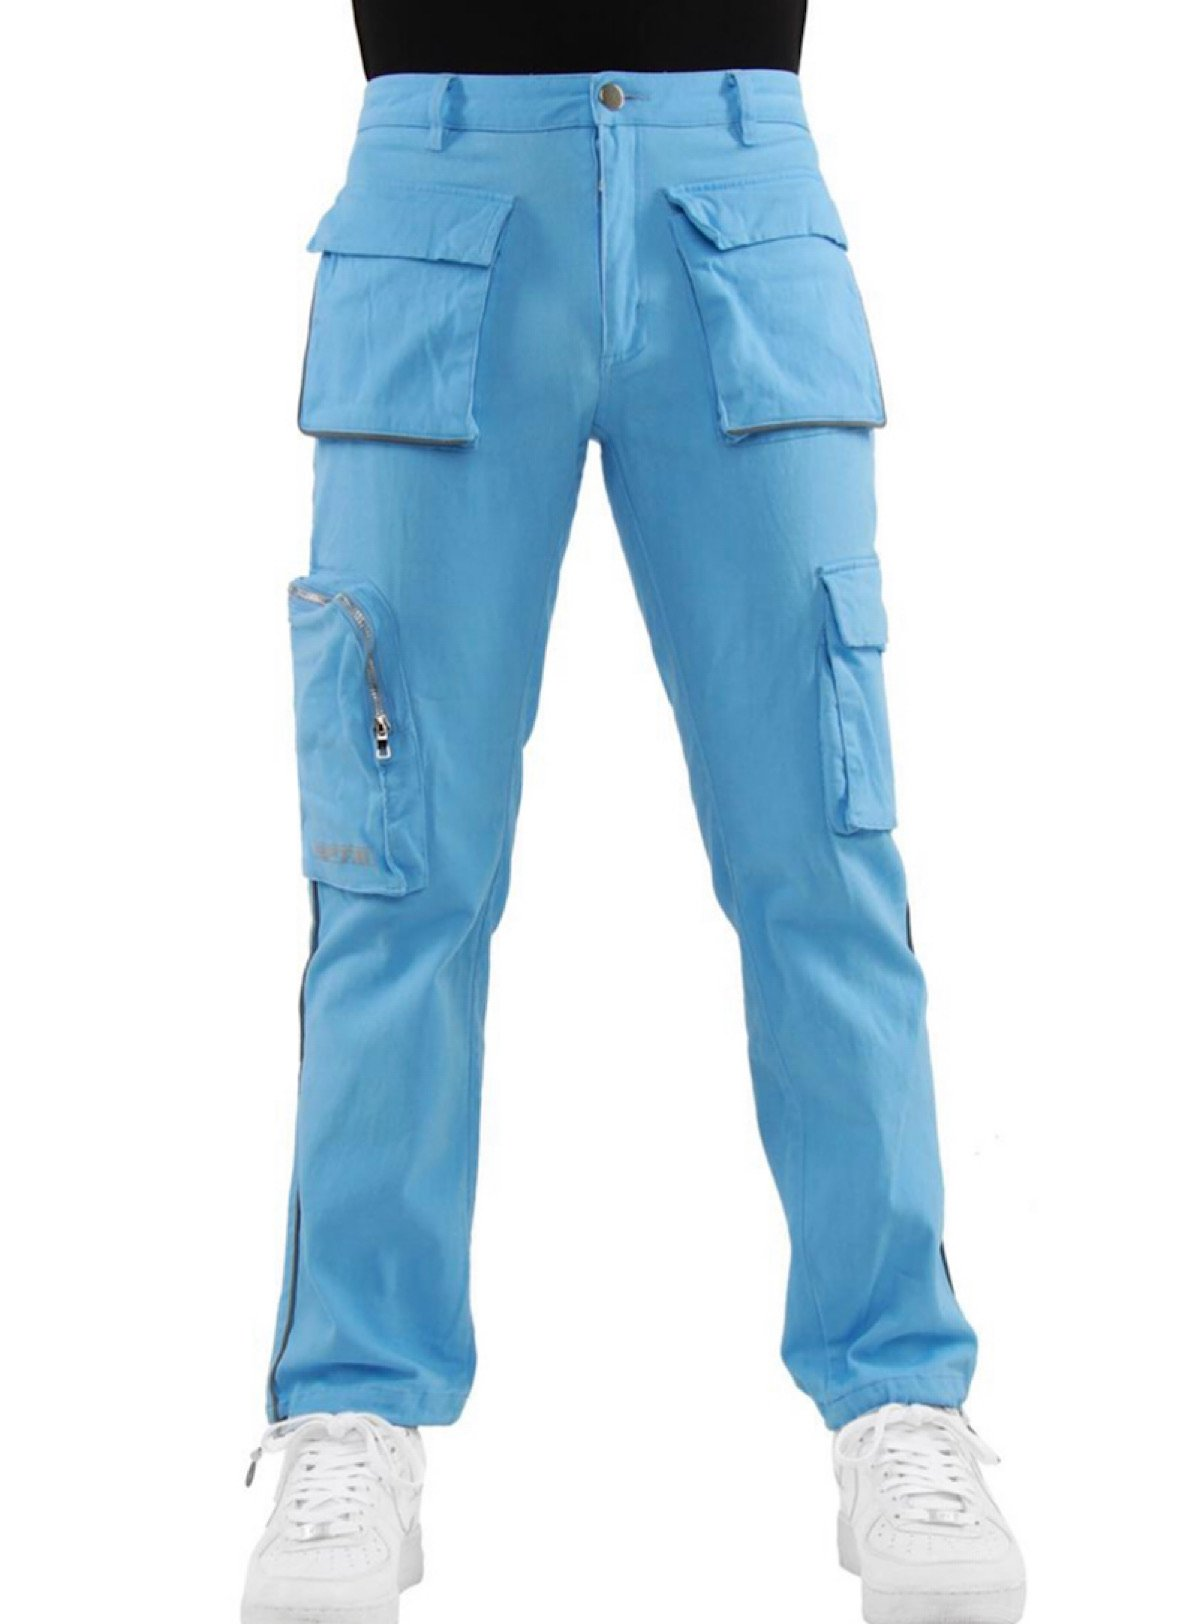 EPTM Track Pants - Piping Cargo - Sky Blue